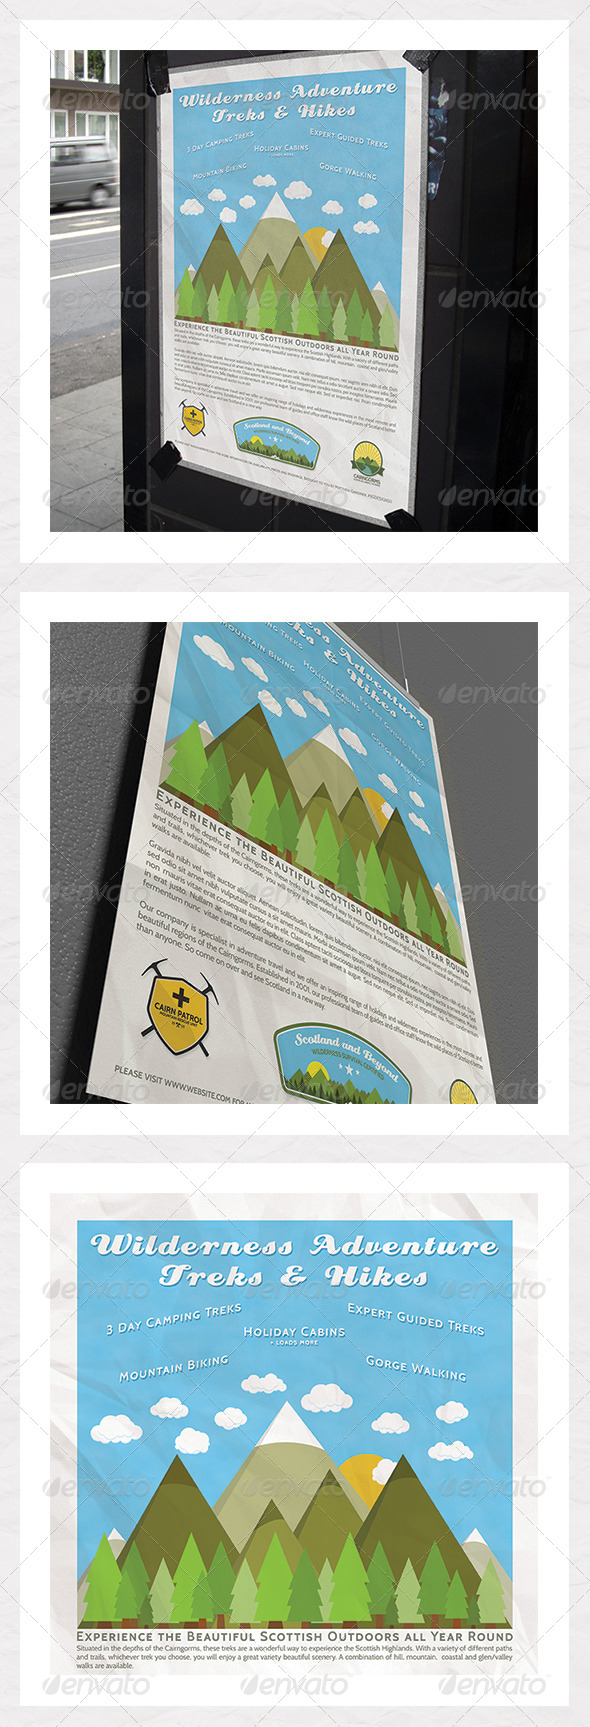 Outdoor Adventure Vacation Poster